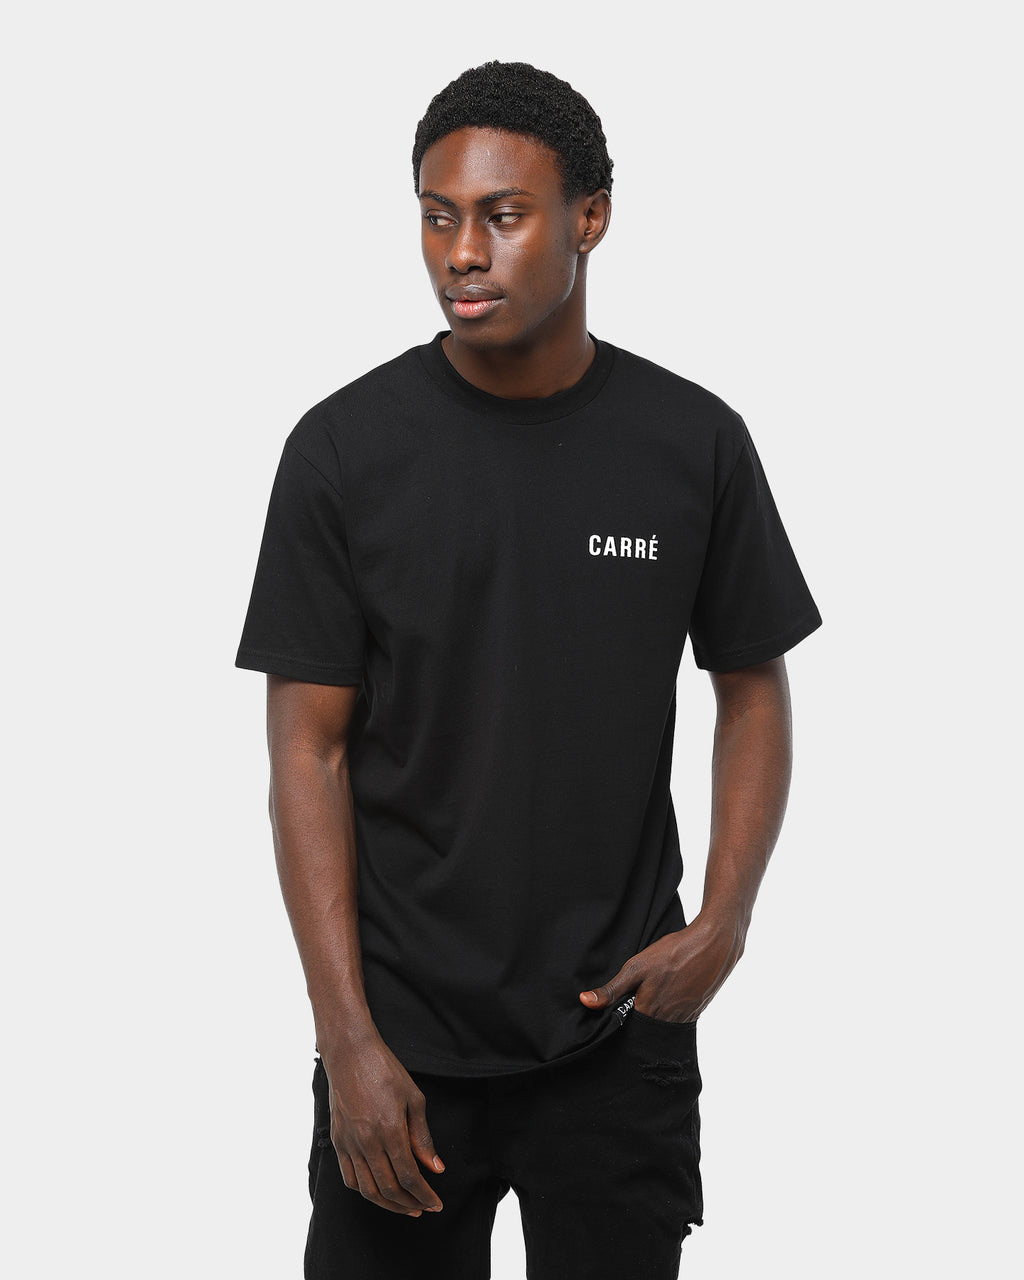 Carré Represent Classic Short Sleeve T-Shirt Black